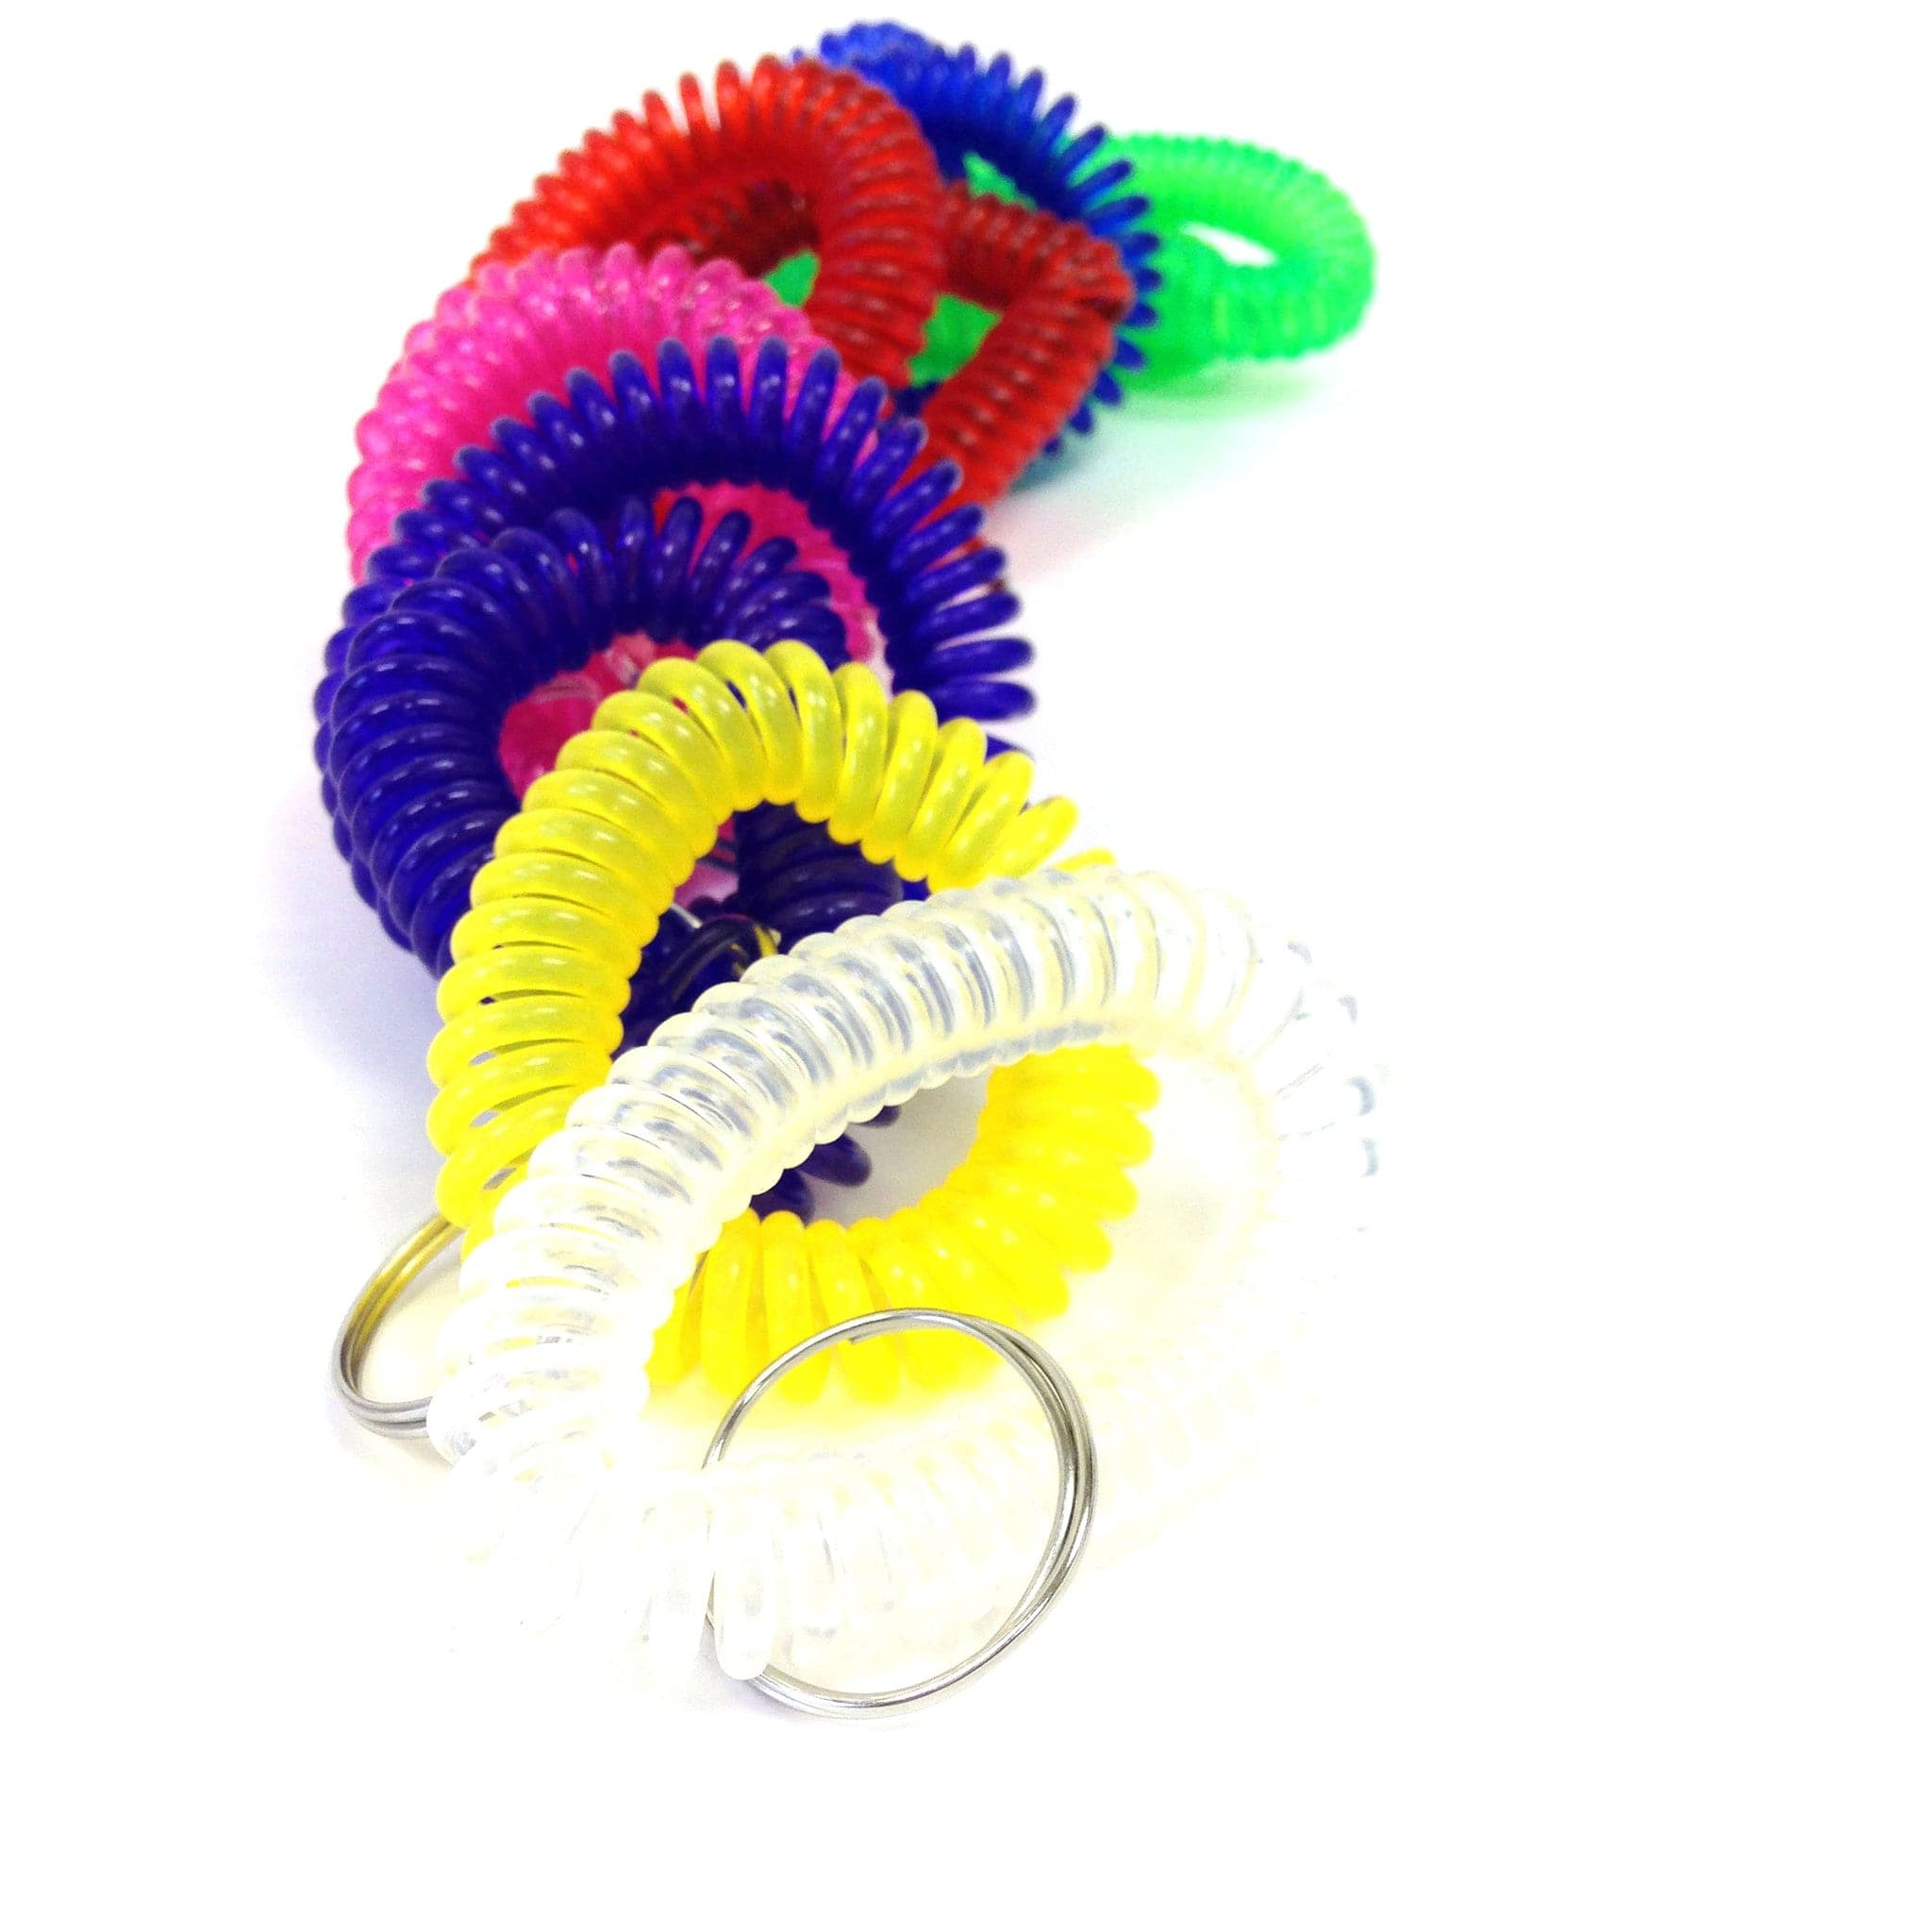 Rainbow Color Wrist Coil - Bulk Orders